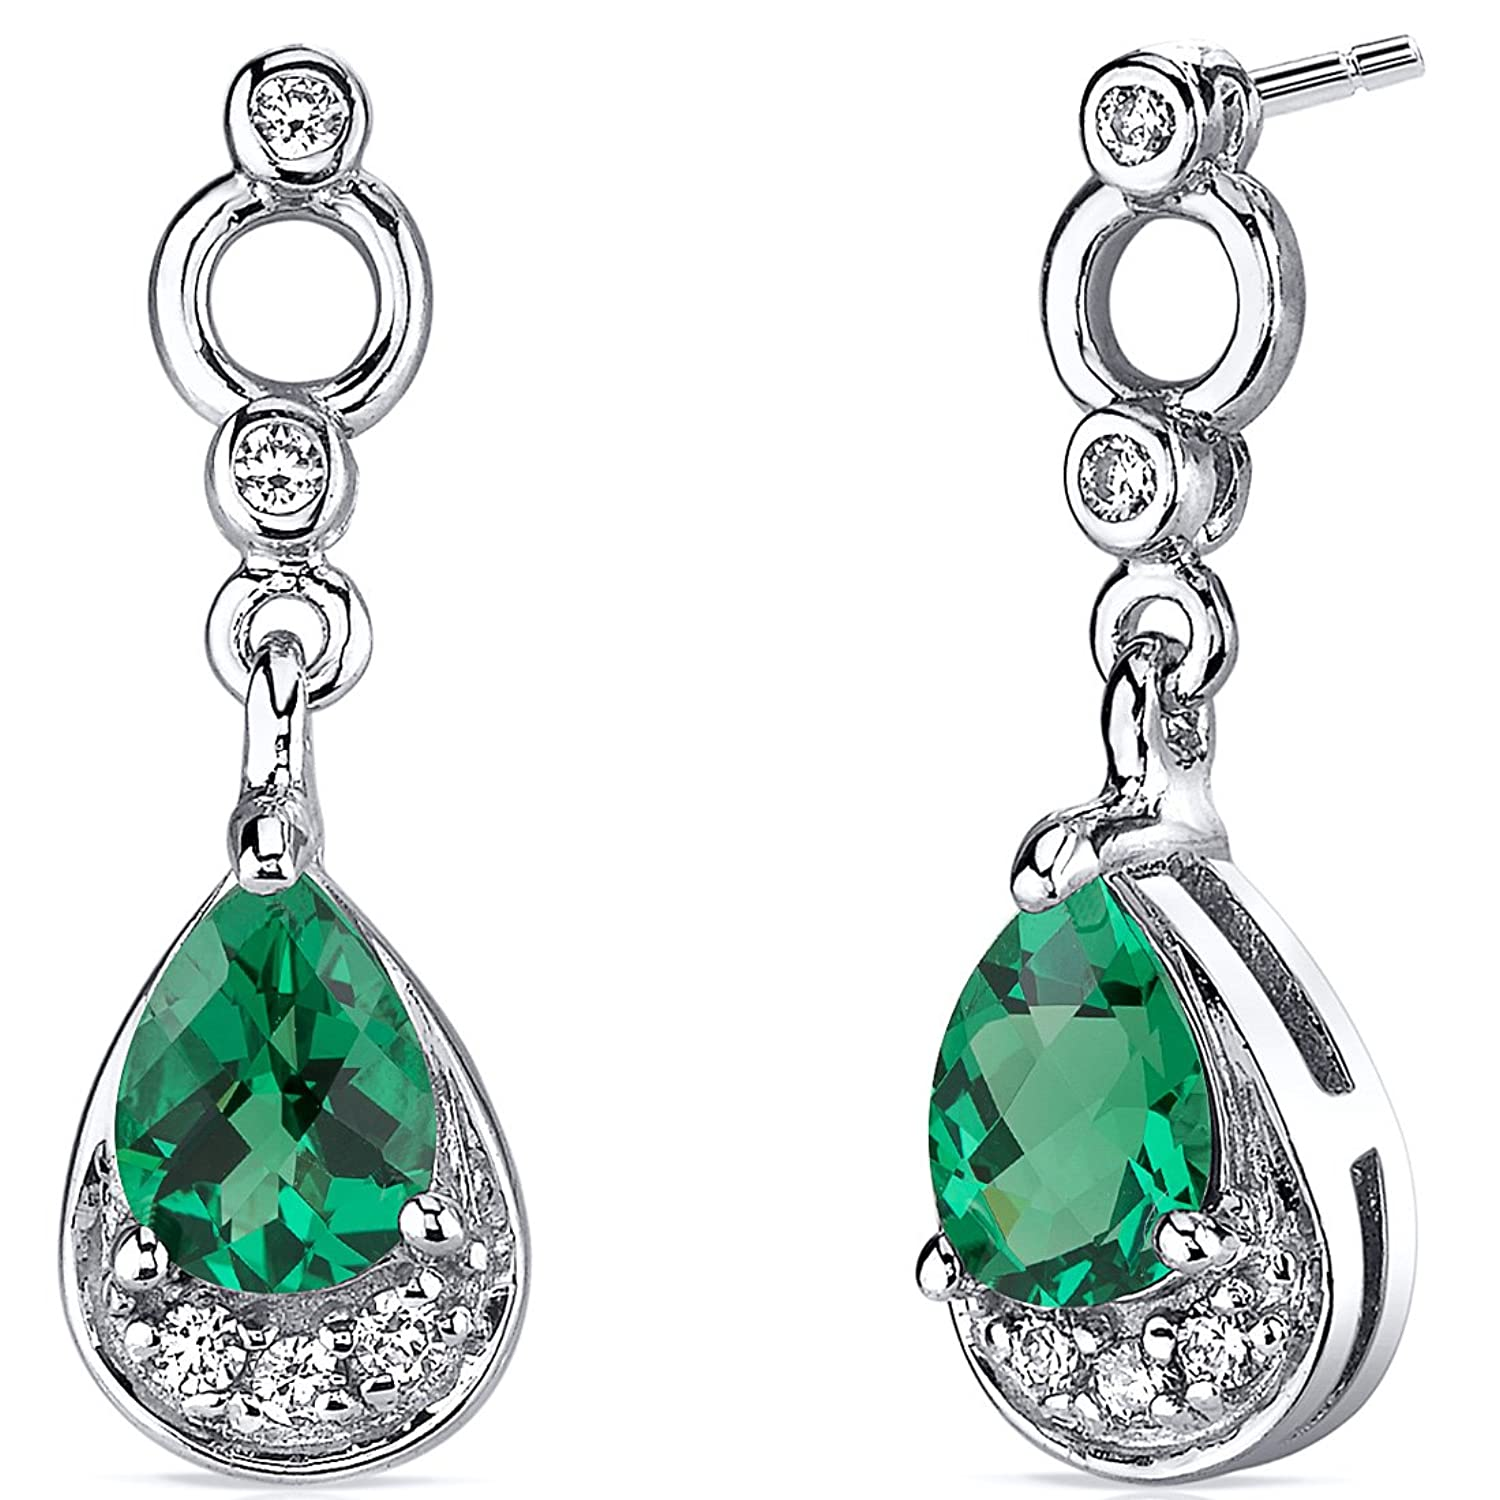 1.00 Carats Simulated Emerald Dangle Earrings in Sterling Silver